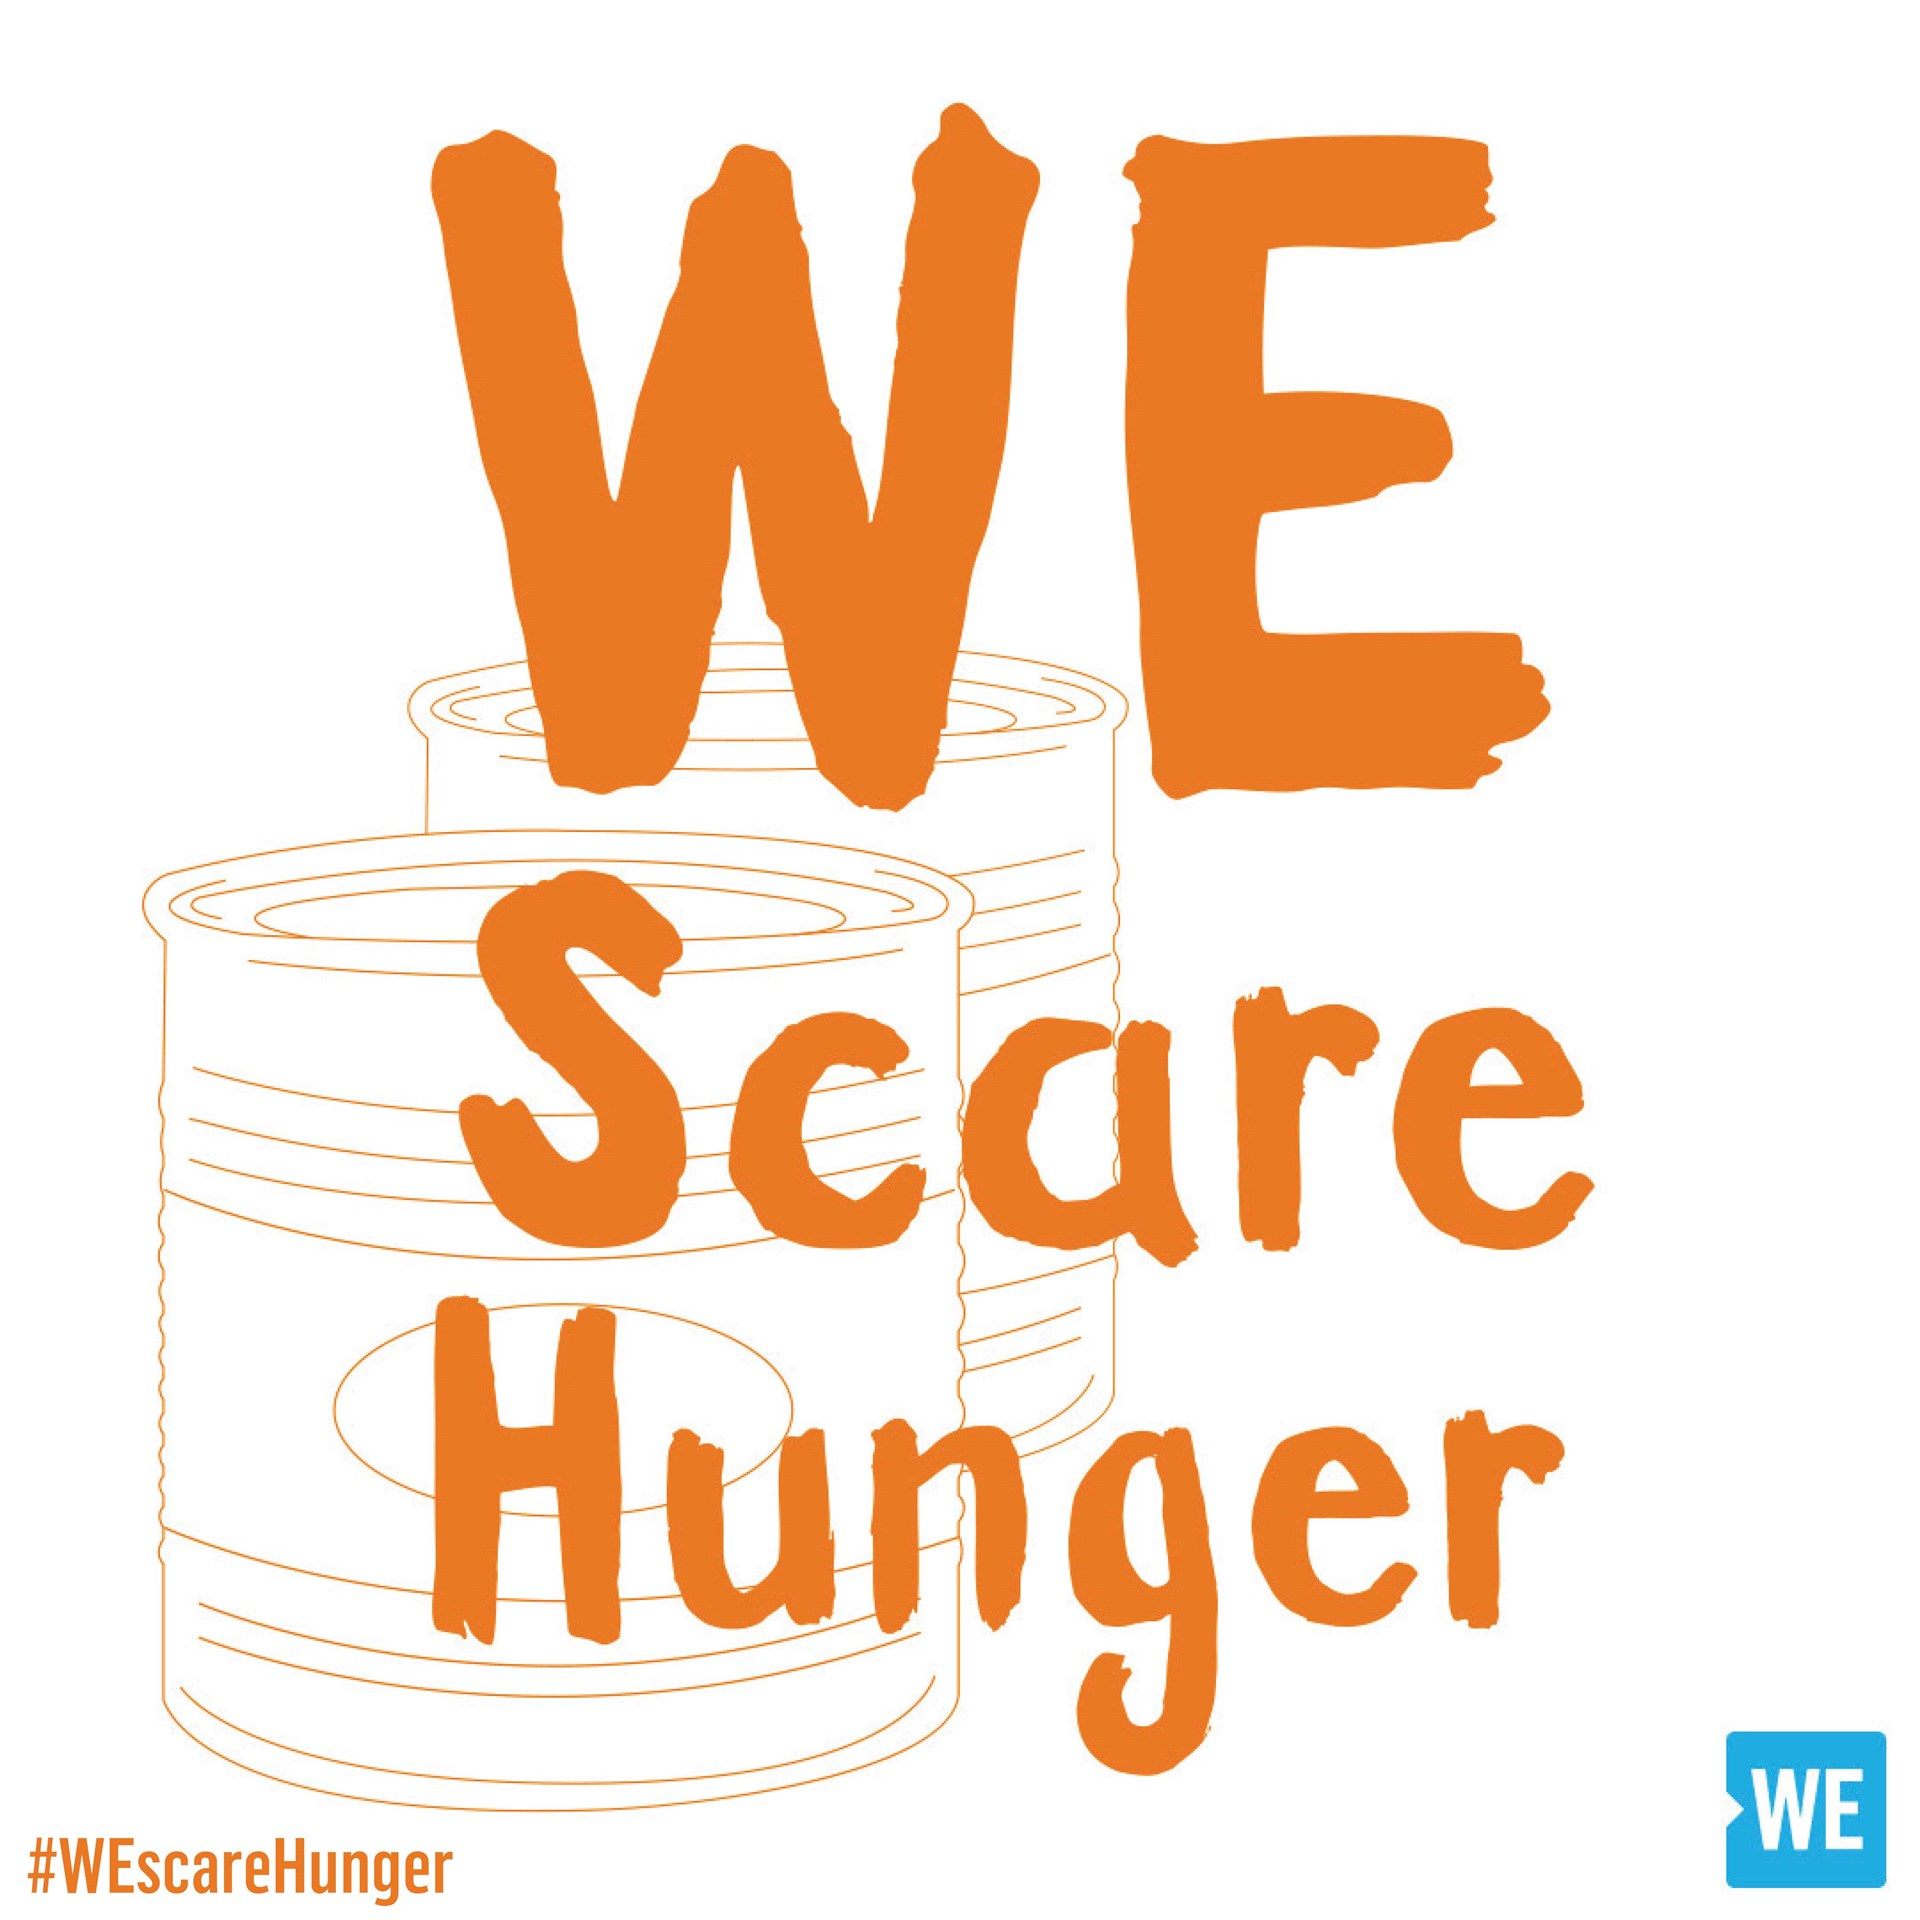 WE%20Scare%20Hunger.jpg